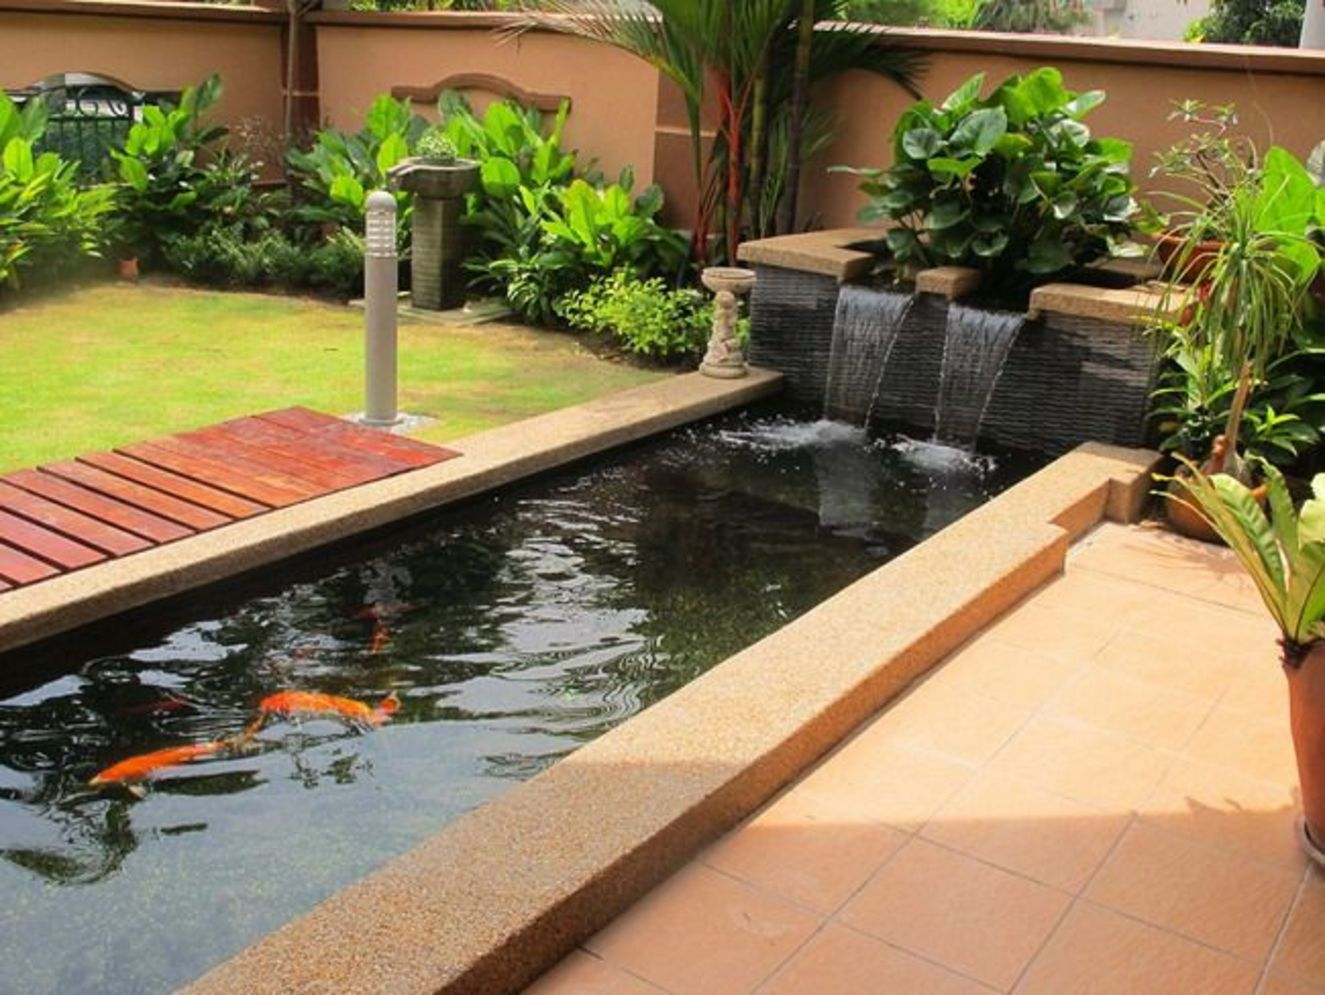 Clever exterior update showing different fresh fish pond designs Image 23